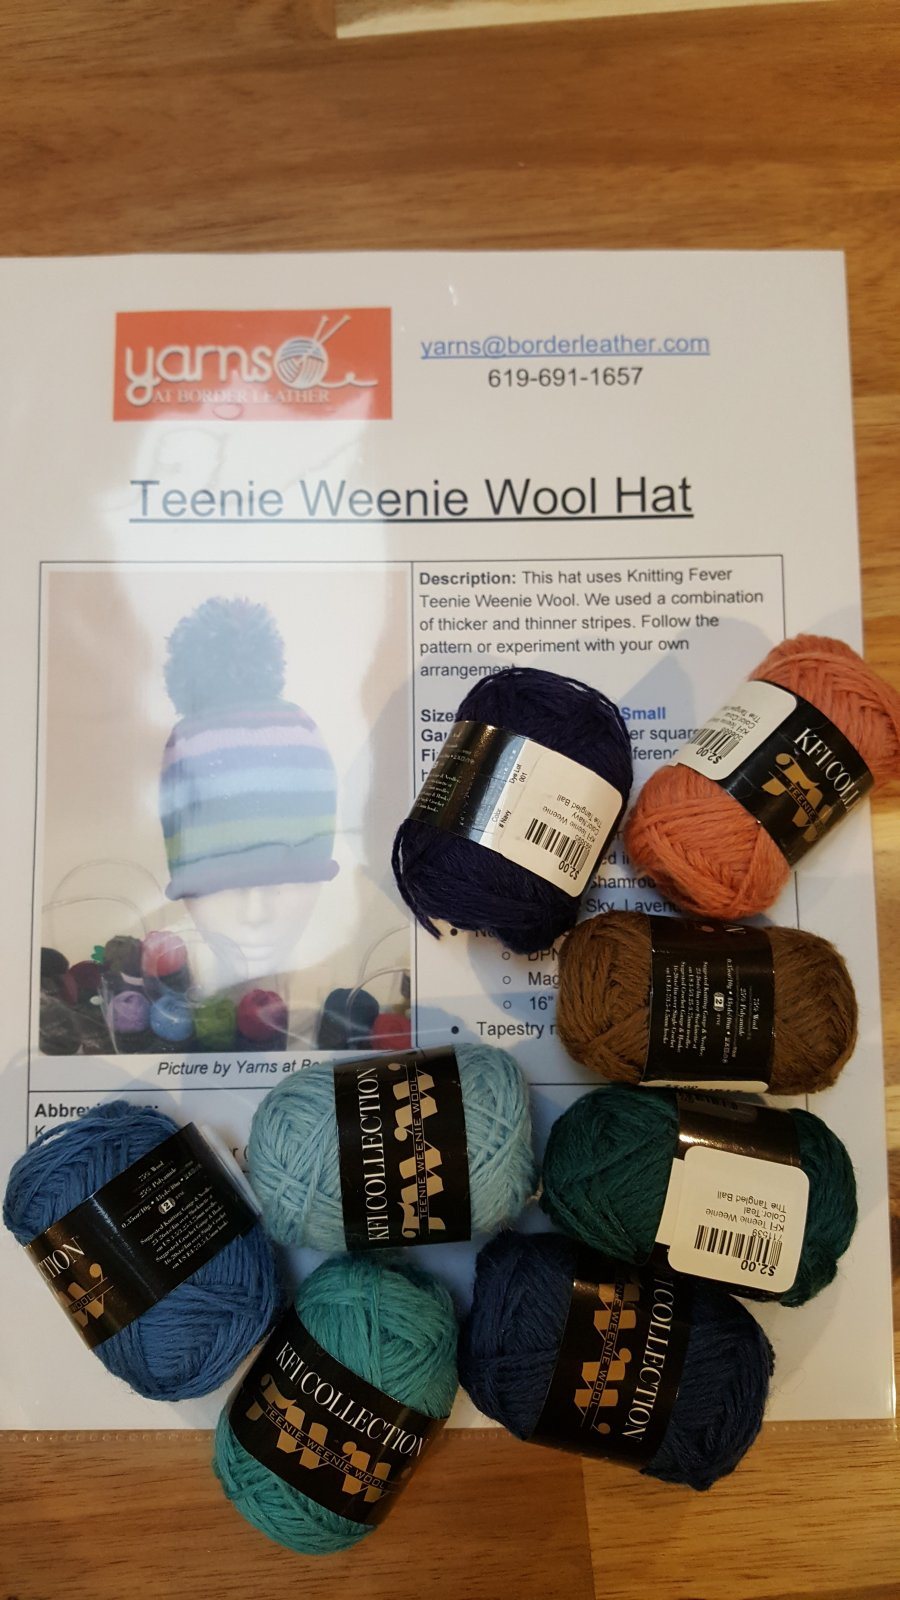 Teenie Weenie Wool Hat Kit